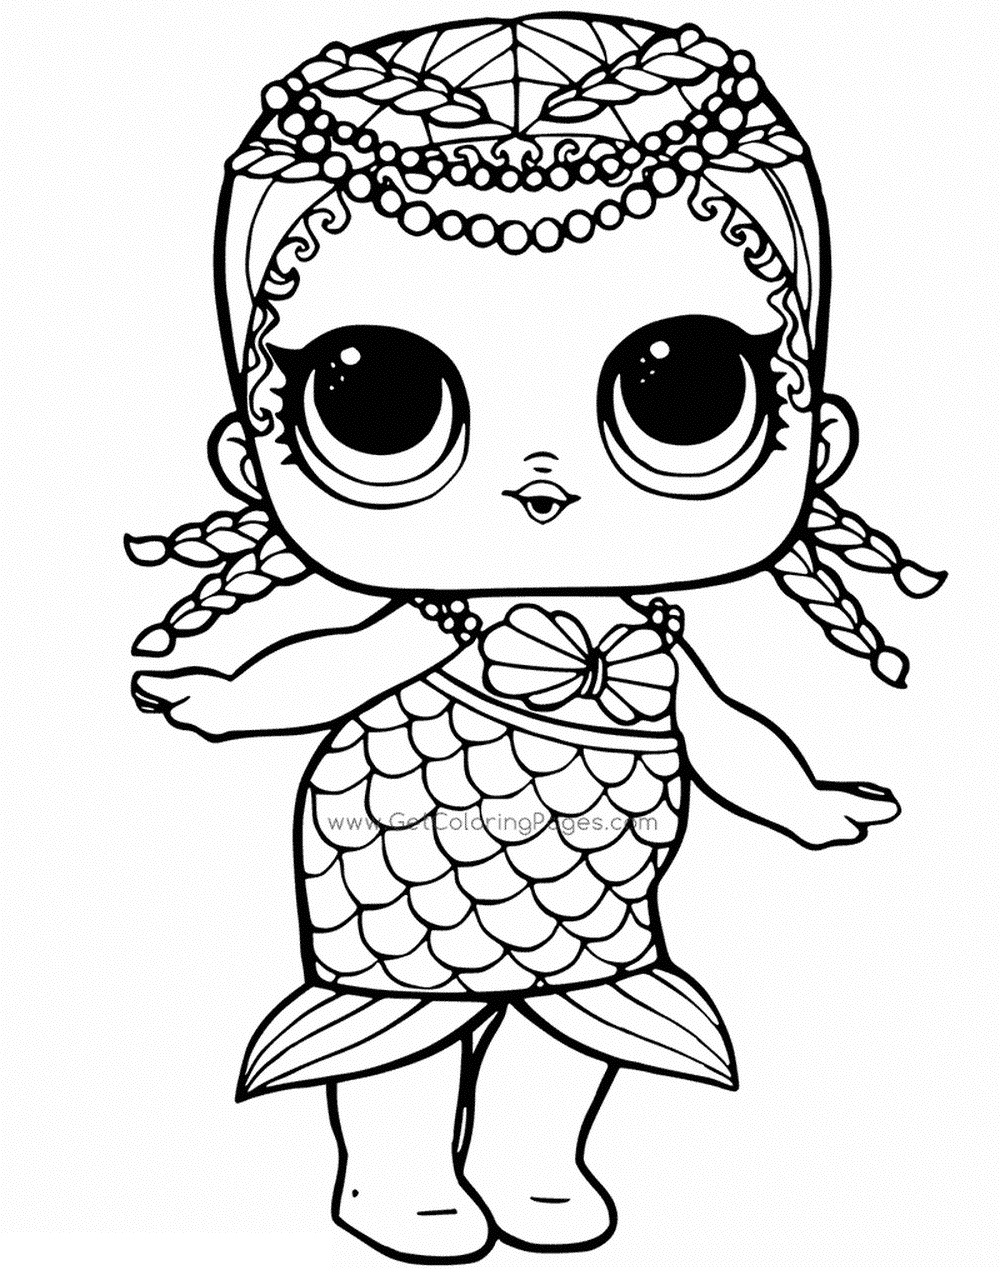 coloring sheets lol lol surprise coloring pages to download and print for free coloring lol sheets